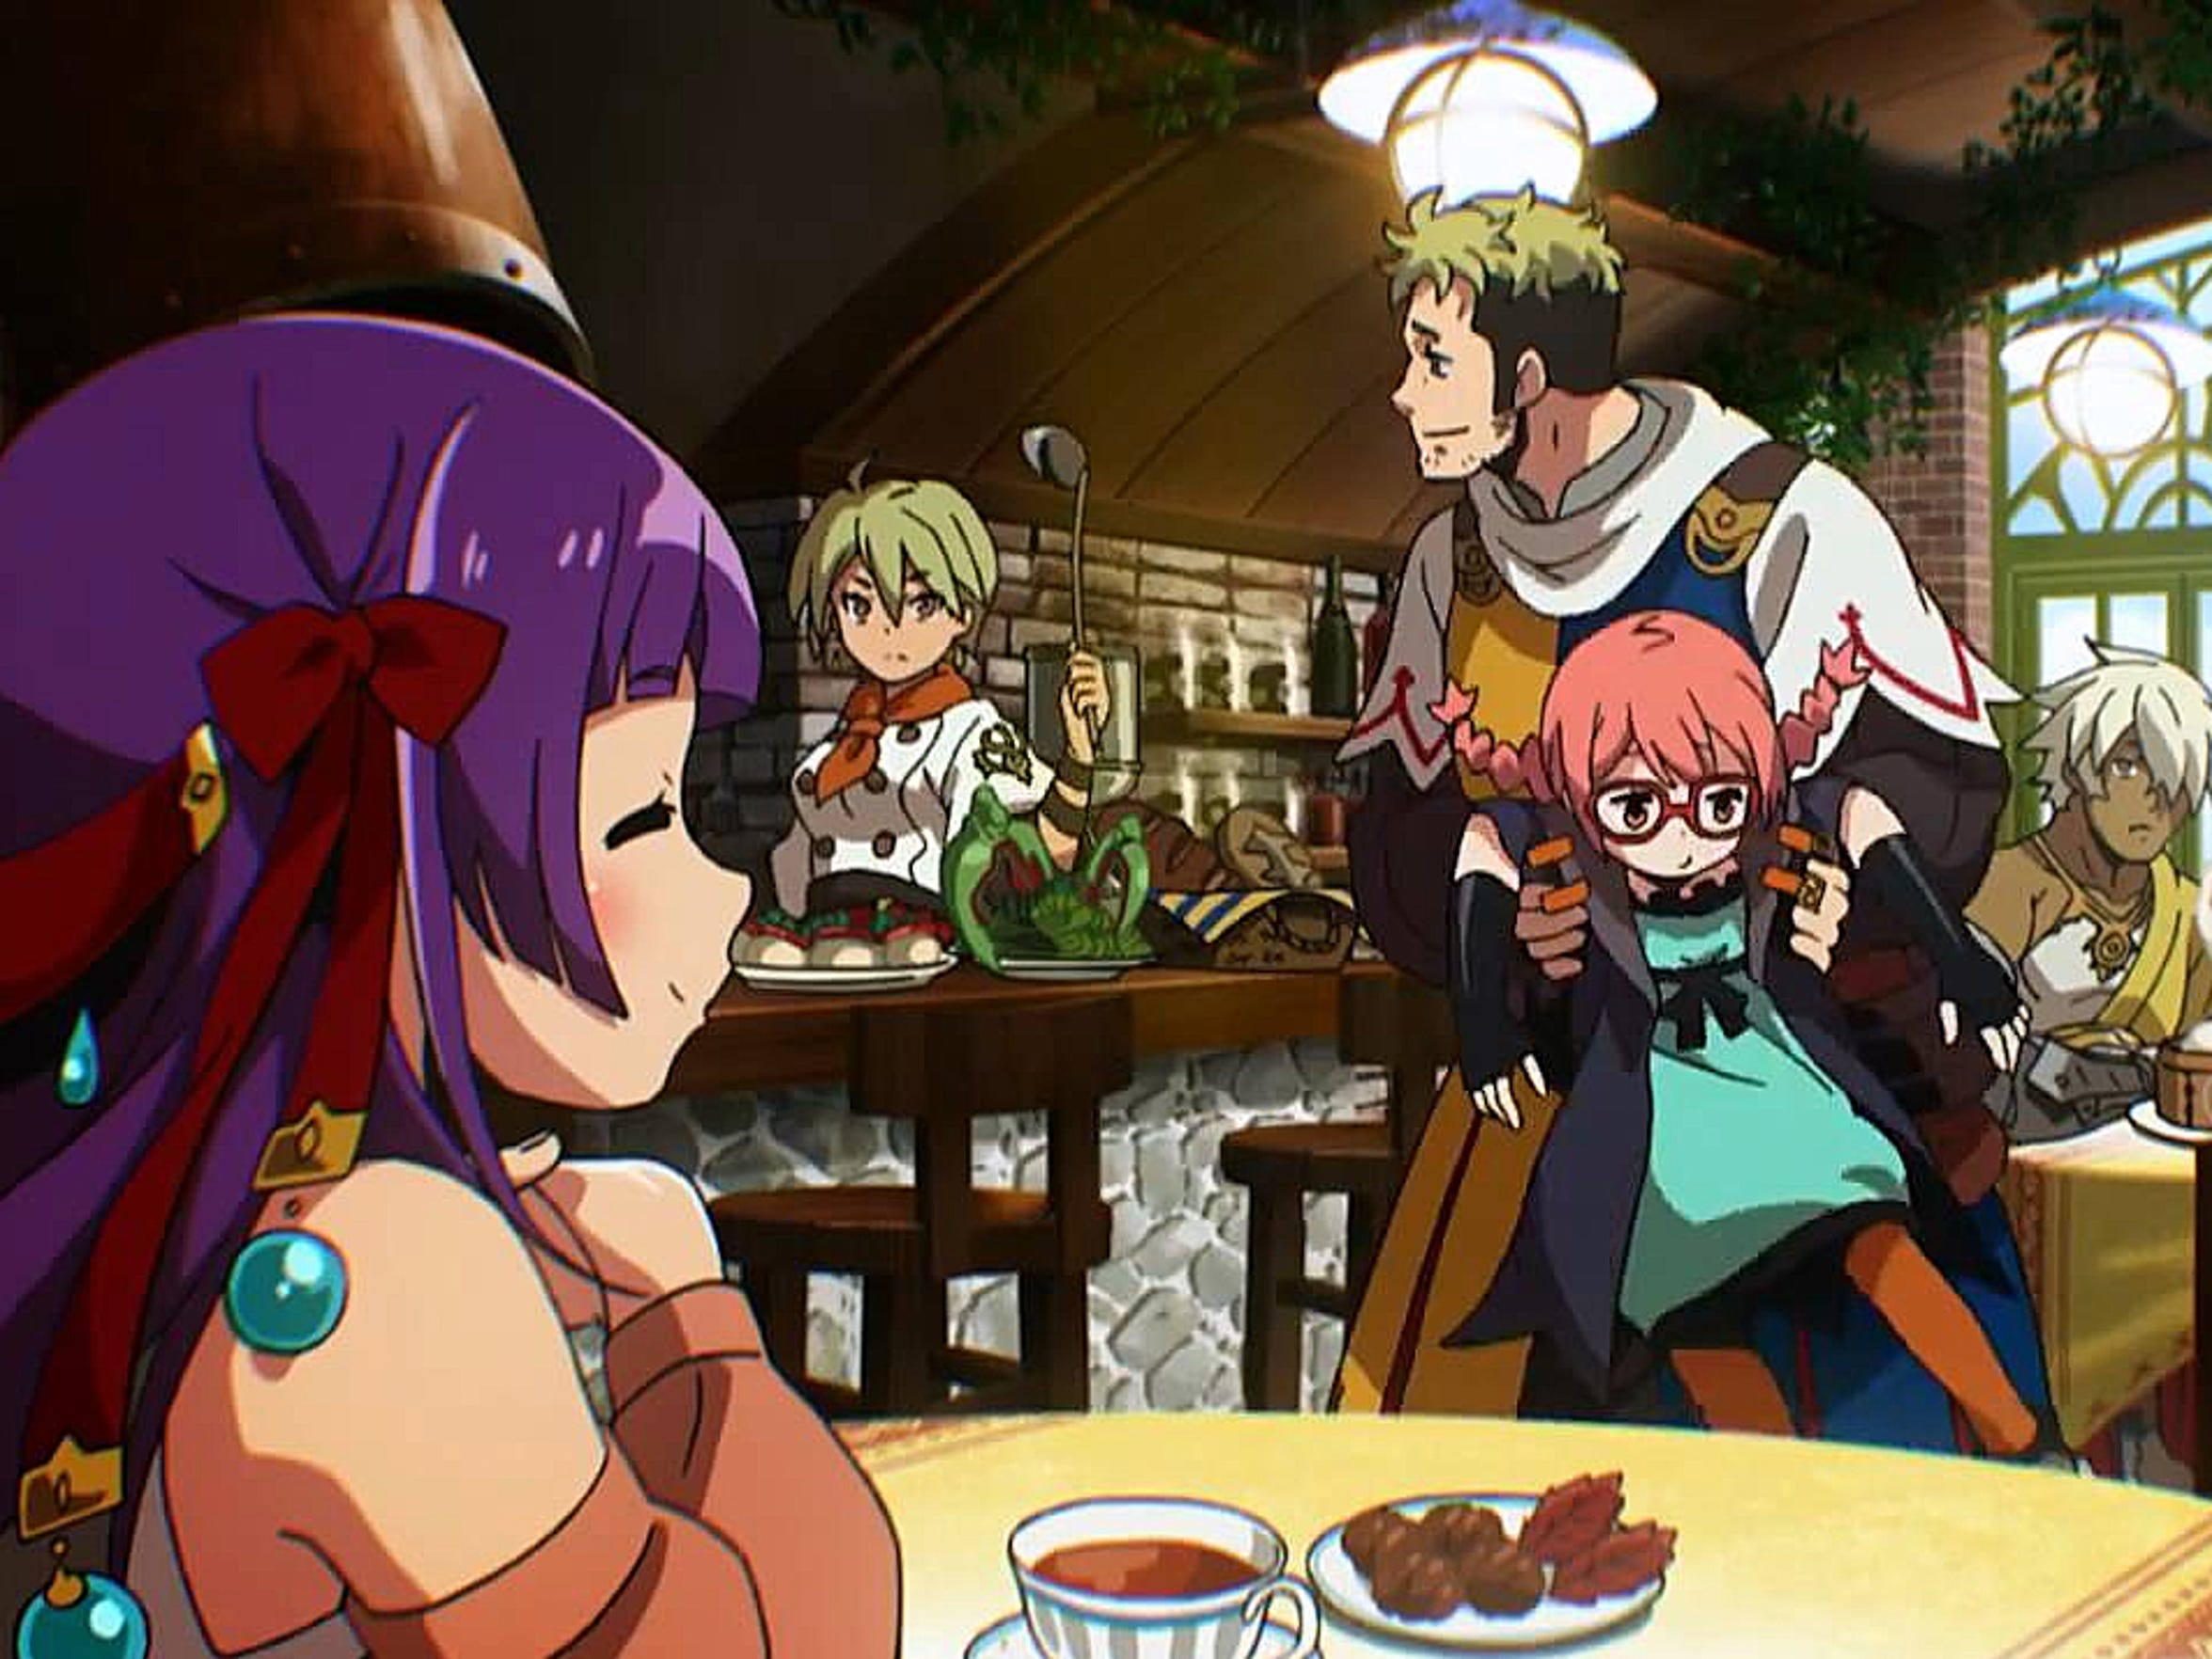 """Etrian Odyssey 2 Untold: The Fafnir Knight"" adds a story mode with a kooky cast of characters."